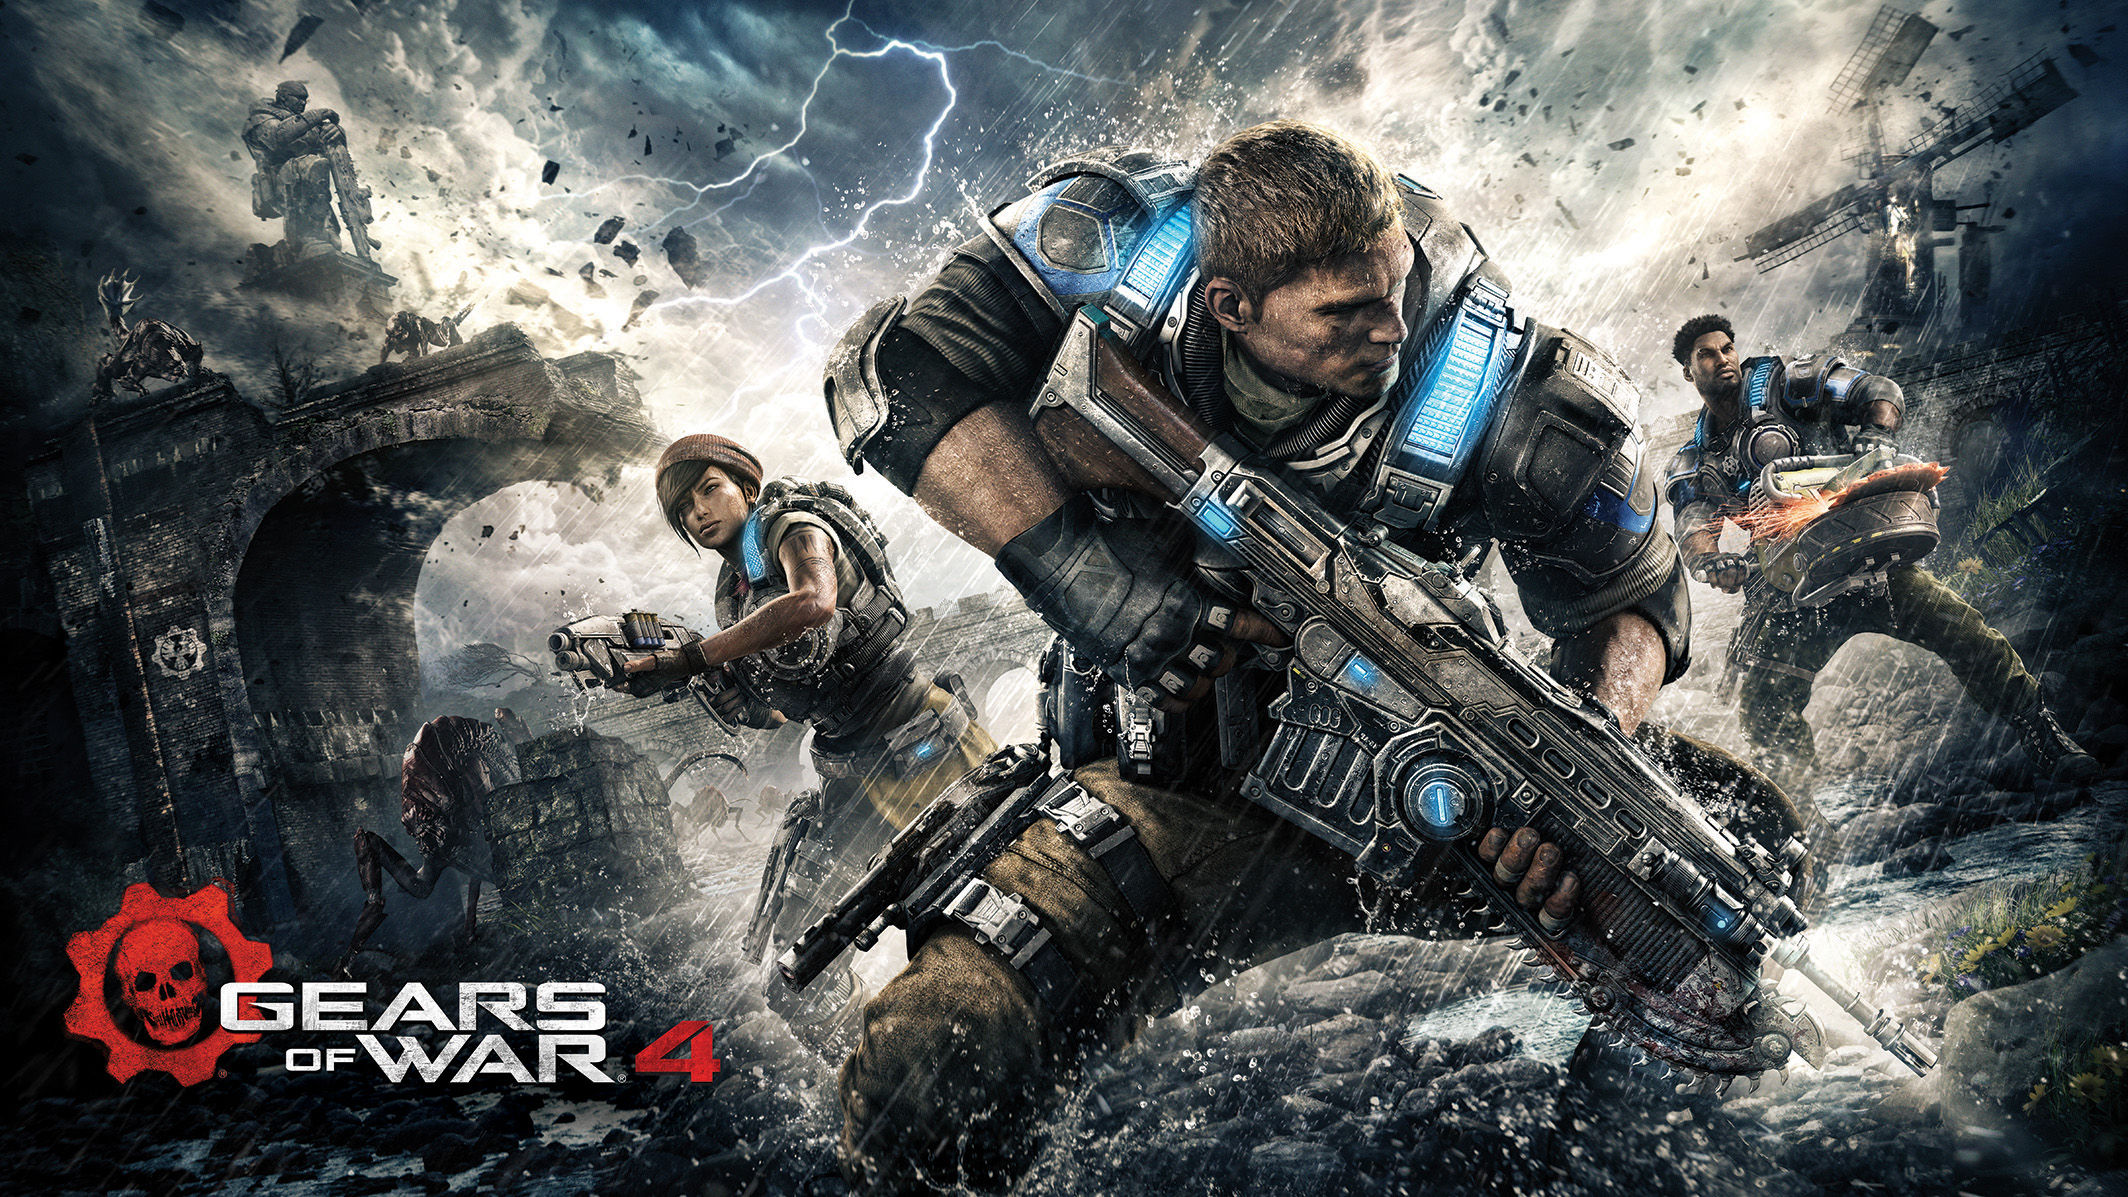 Gears-Of-War-4.jpg